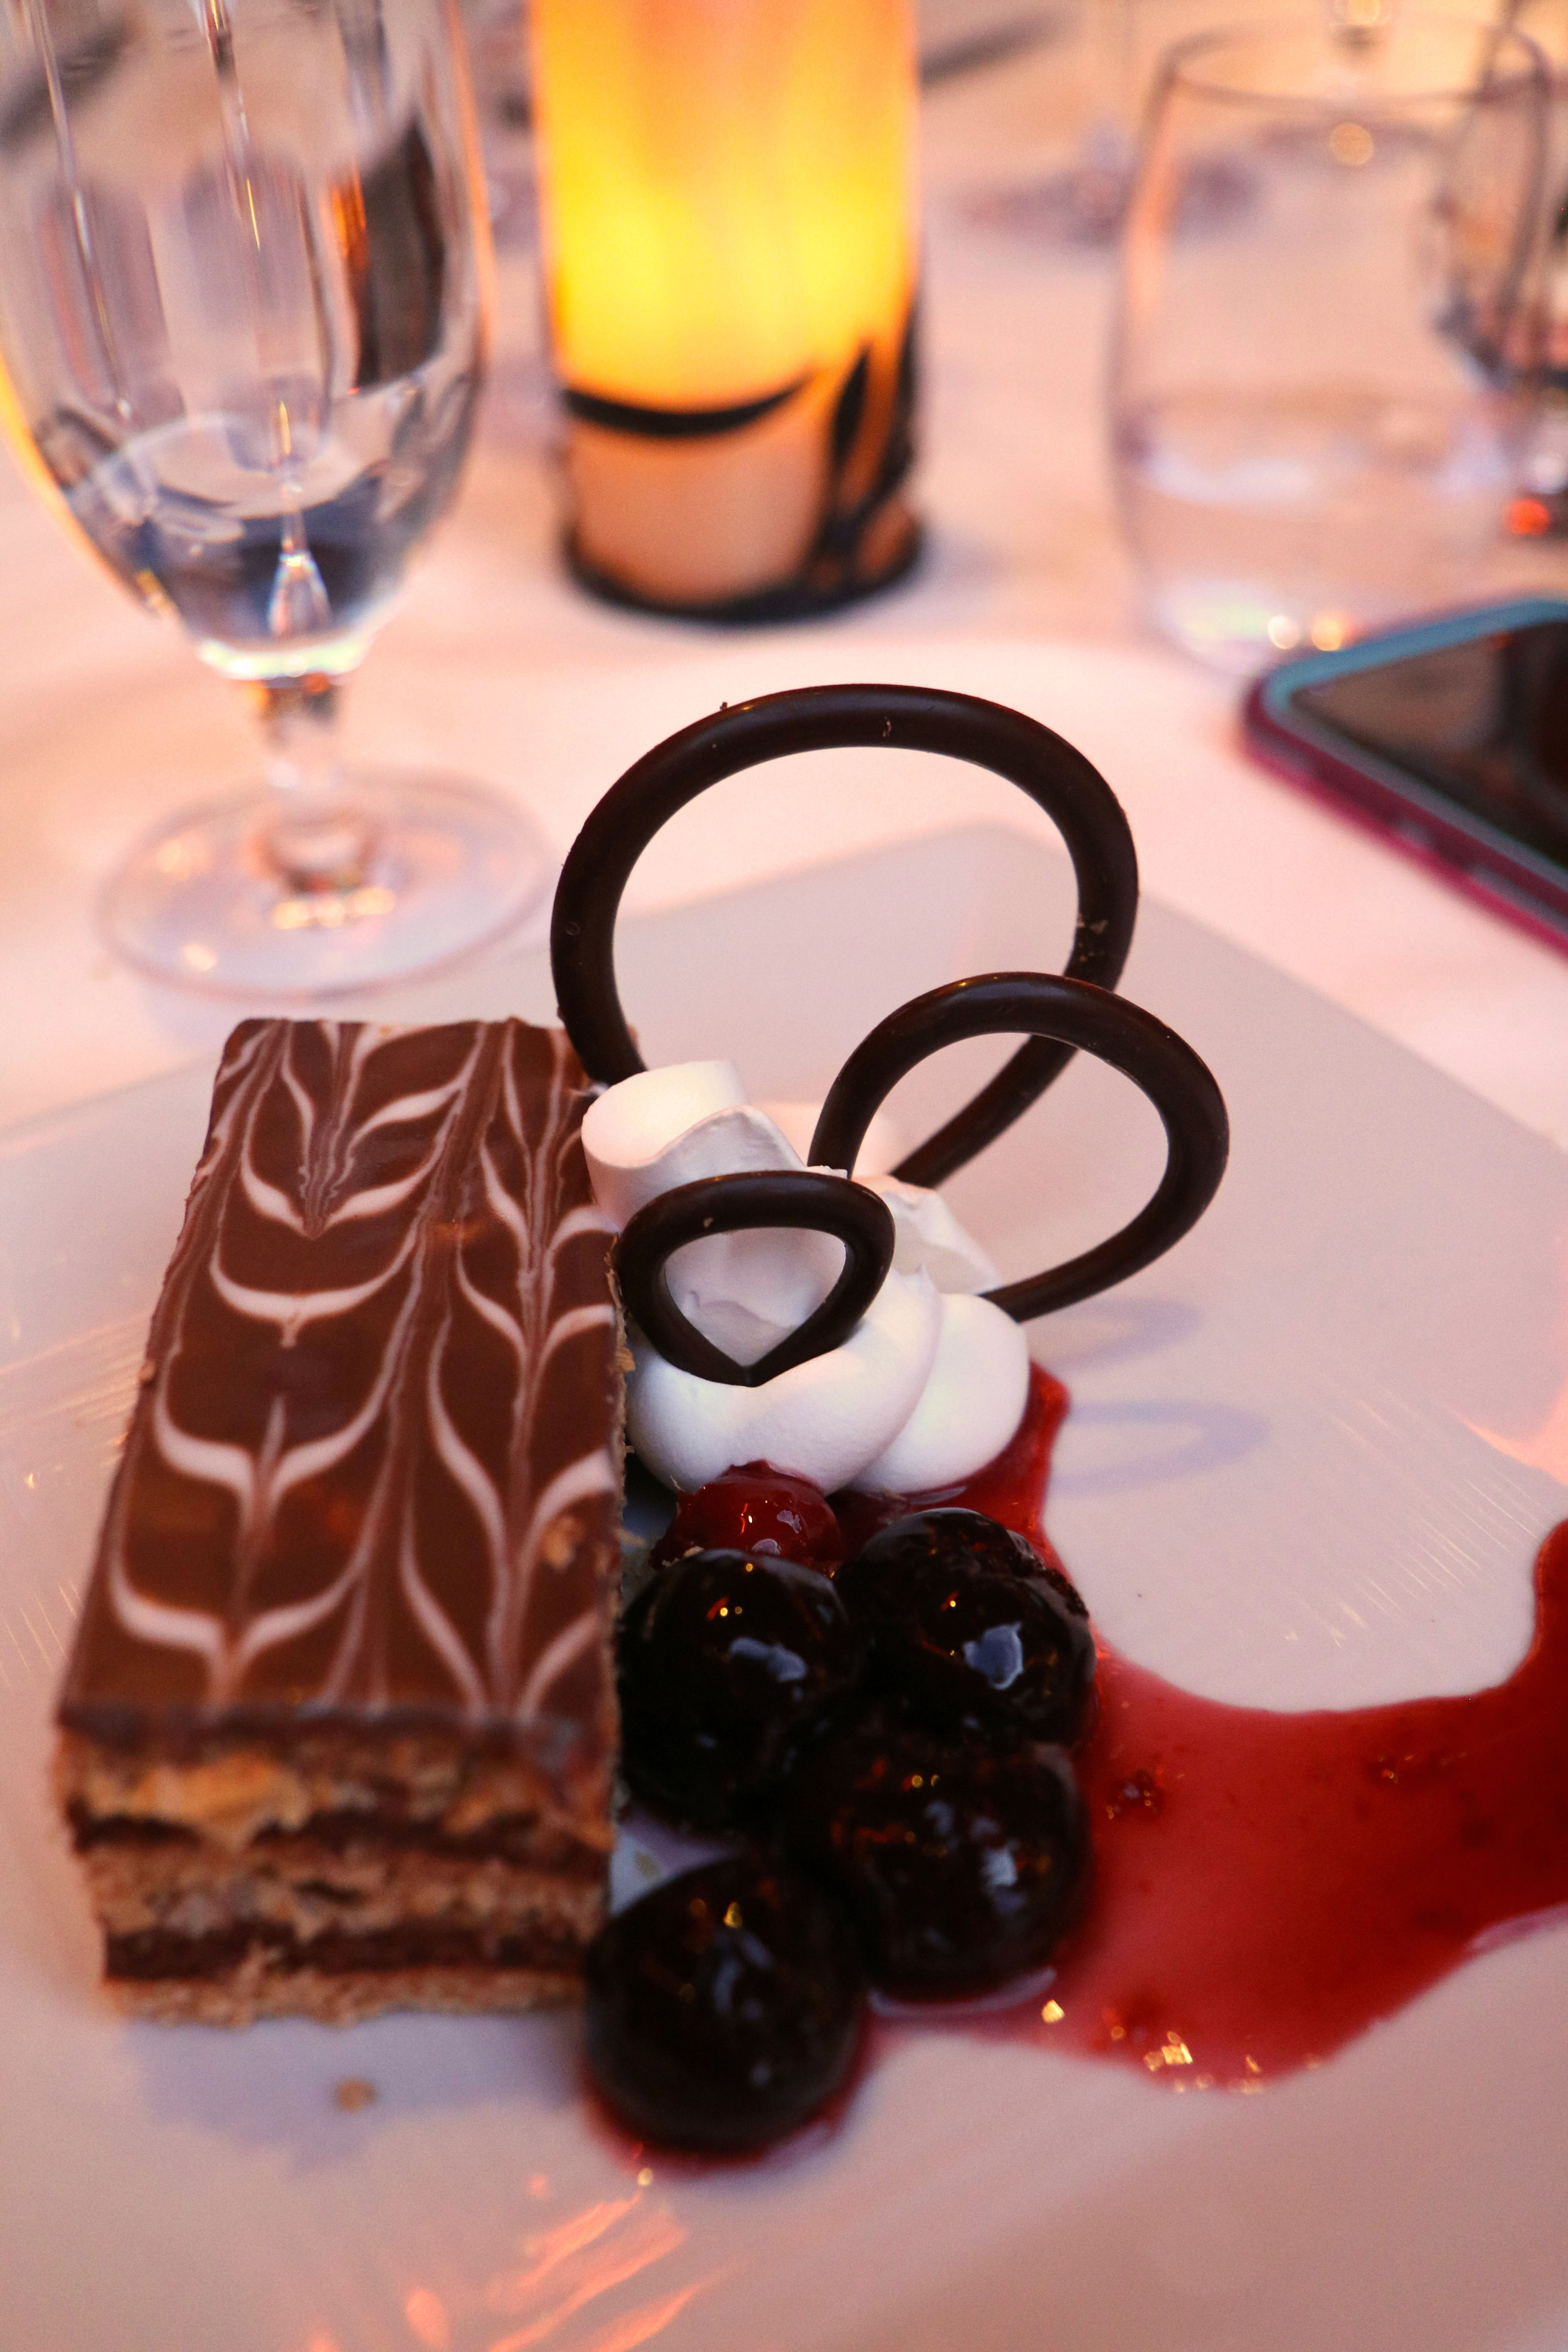 Amazing food from a catered wine dinner at the best casino in Reno, Nevada - the Atlantis Casino Resort Spa